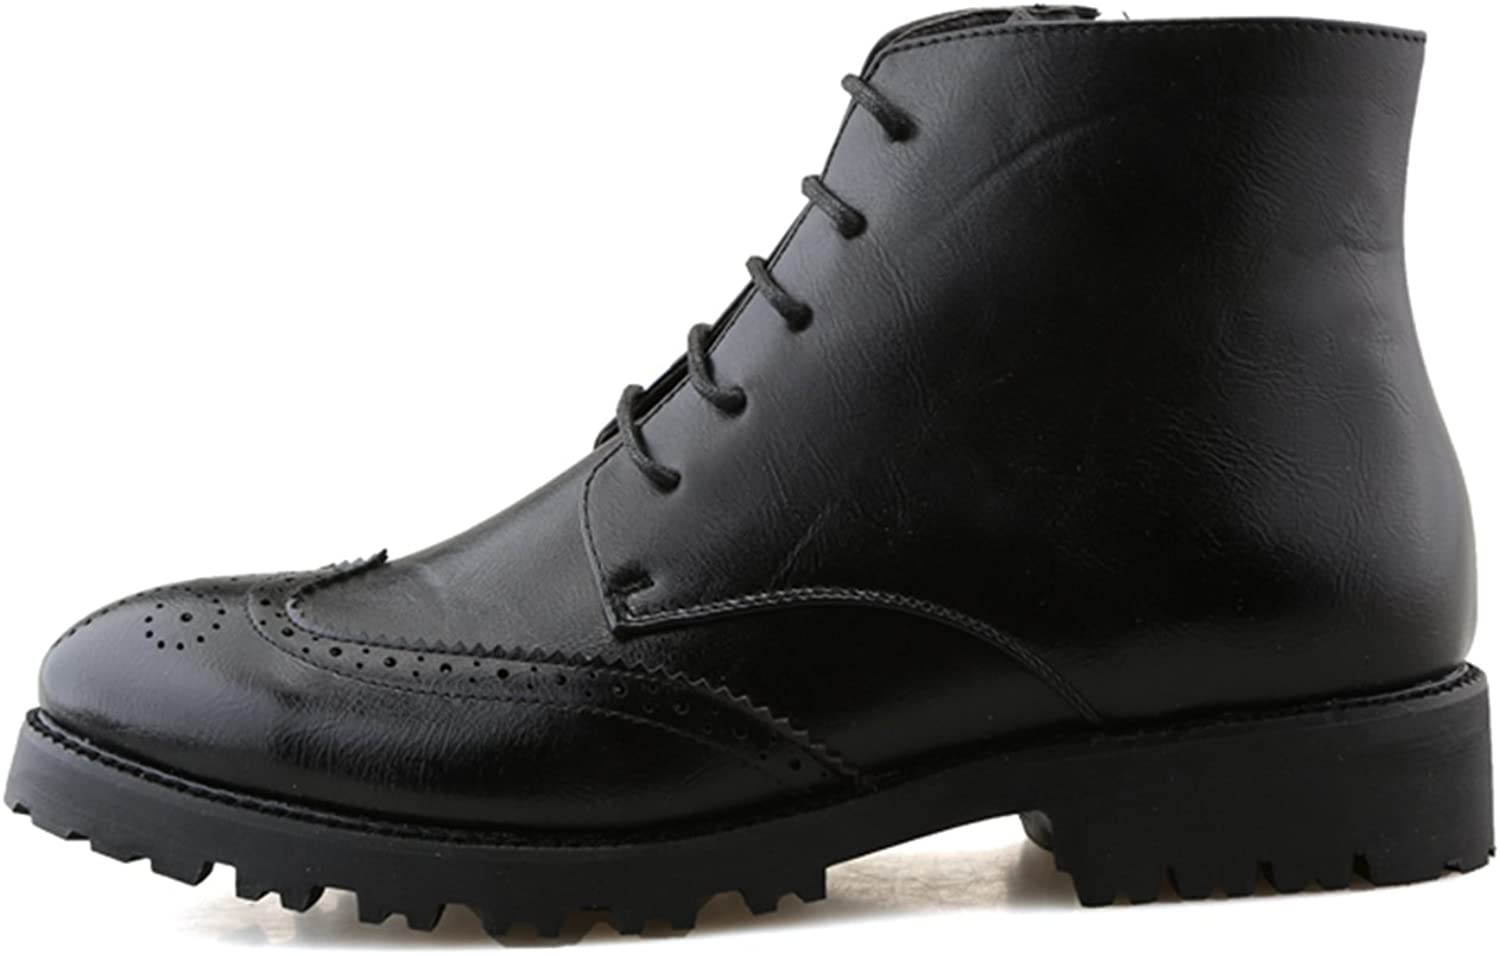 QLVY men's Classic Leather Oxfords Lace-Ups Hight top Smart Formal Black shoes